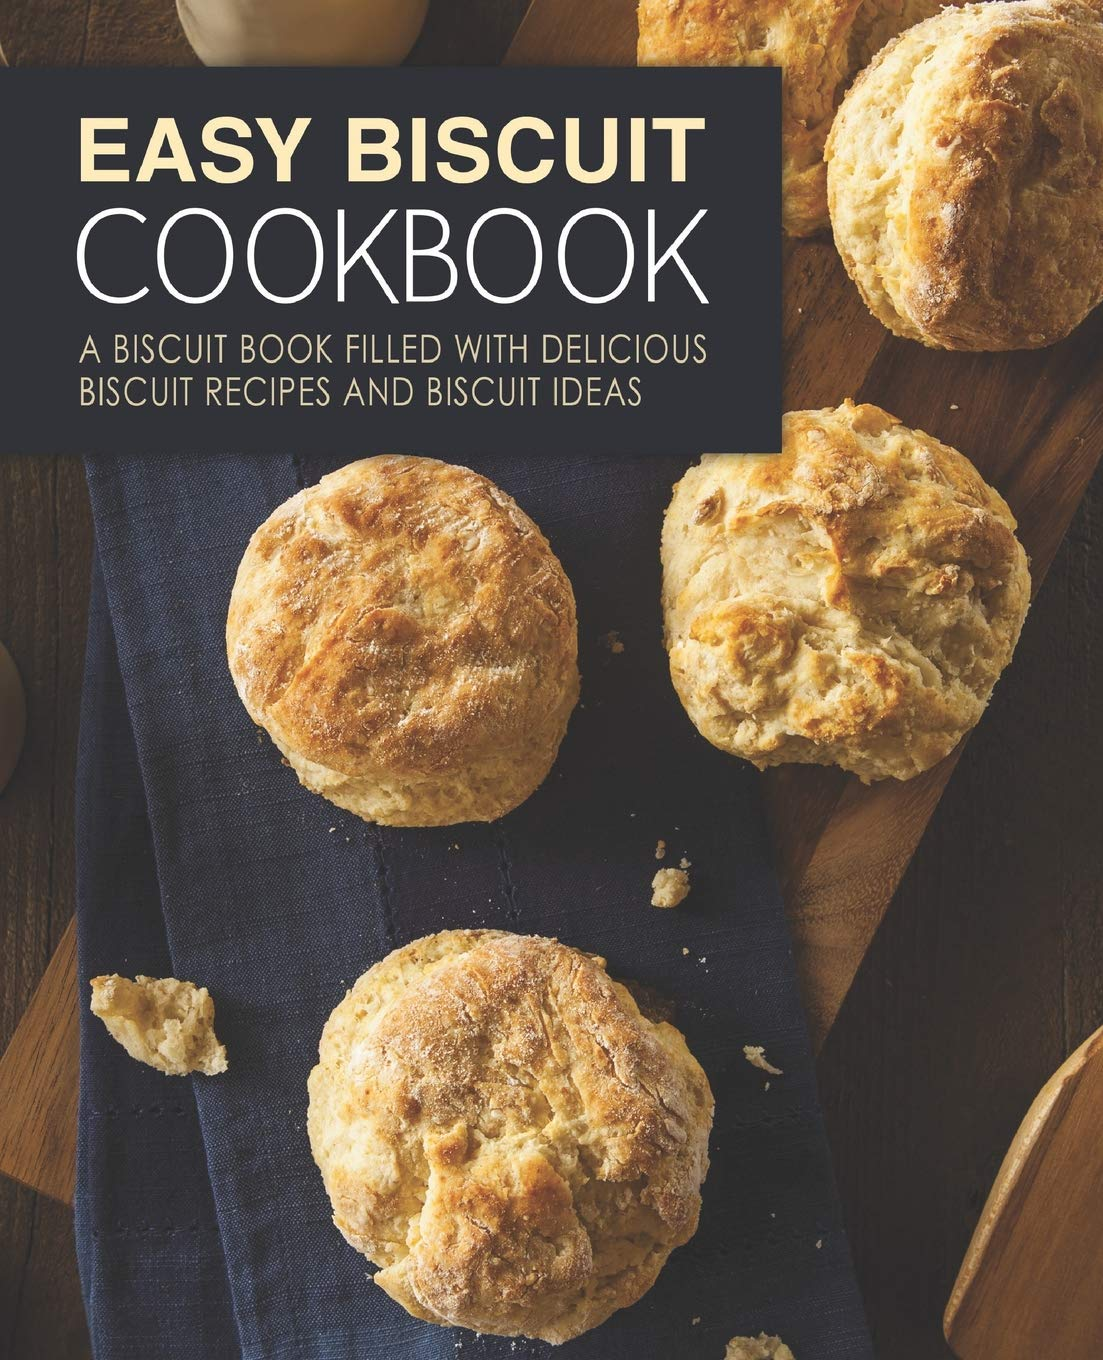 Easy Biscuit Cookbook A Biscuit Book Filled With Delicious Biscuit Recipes And Biscuit Ideas Amazon De Press Booksumo Fremdsprachige Bucher